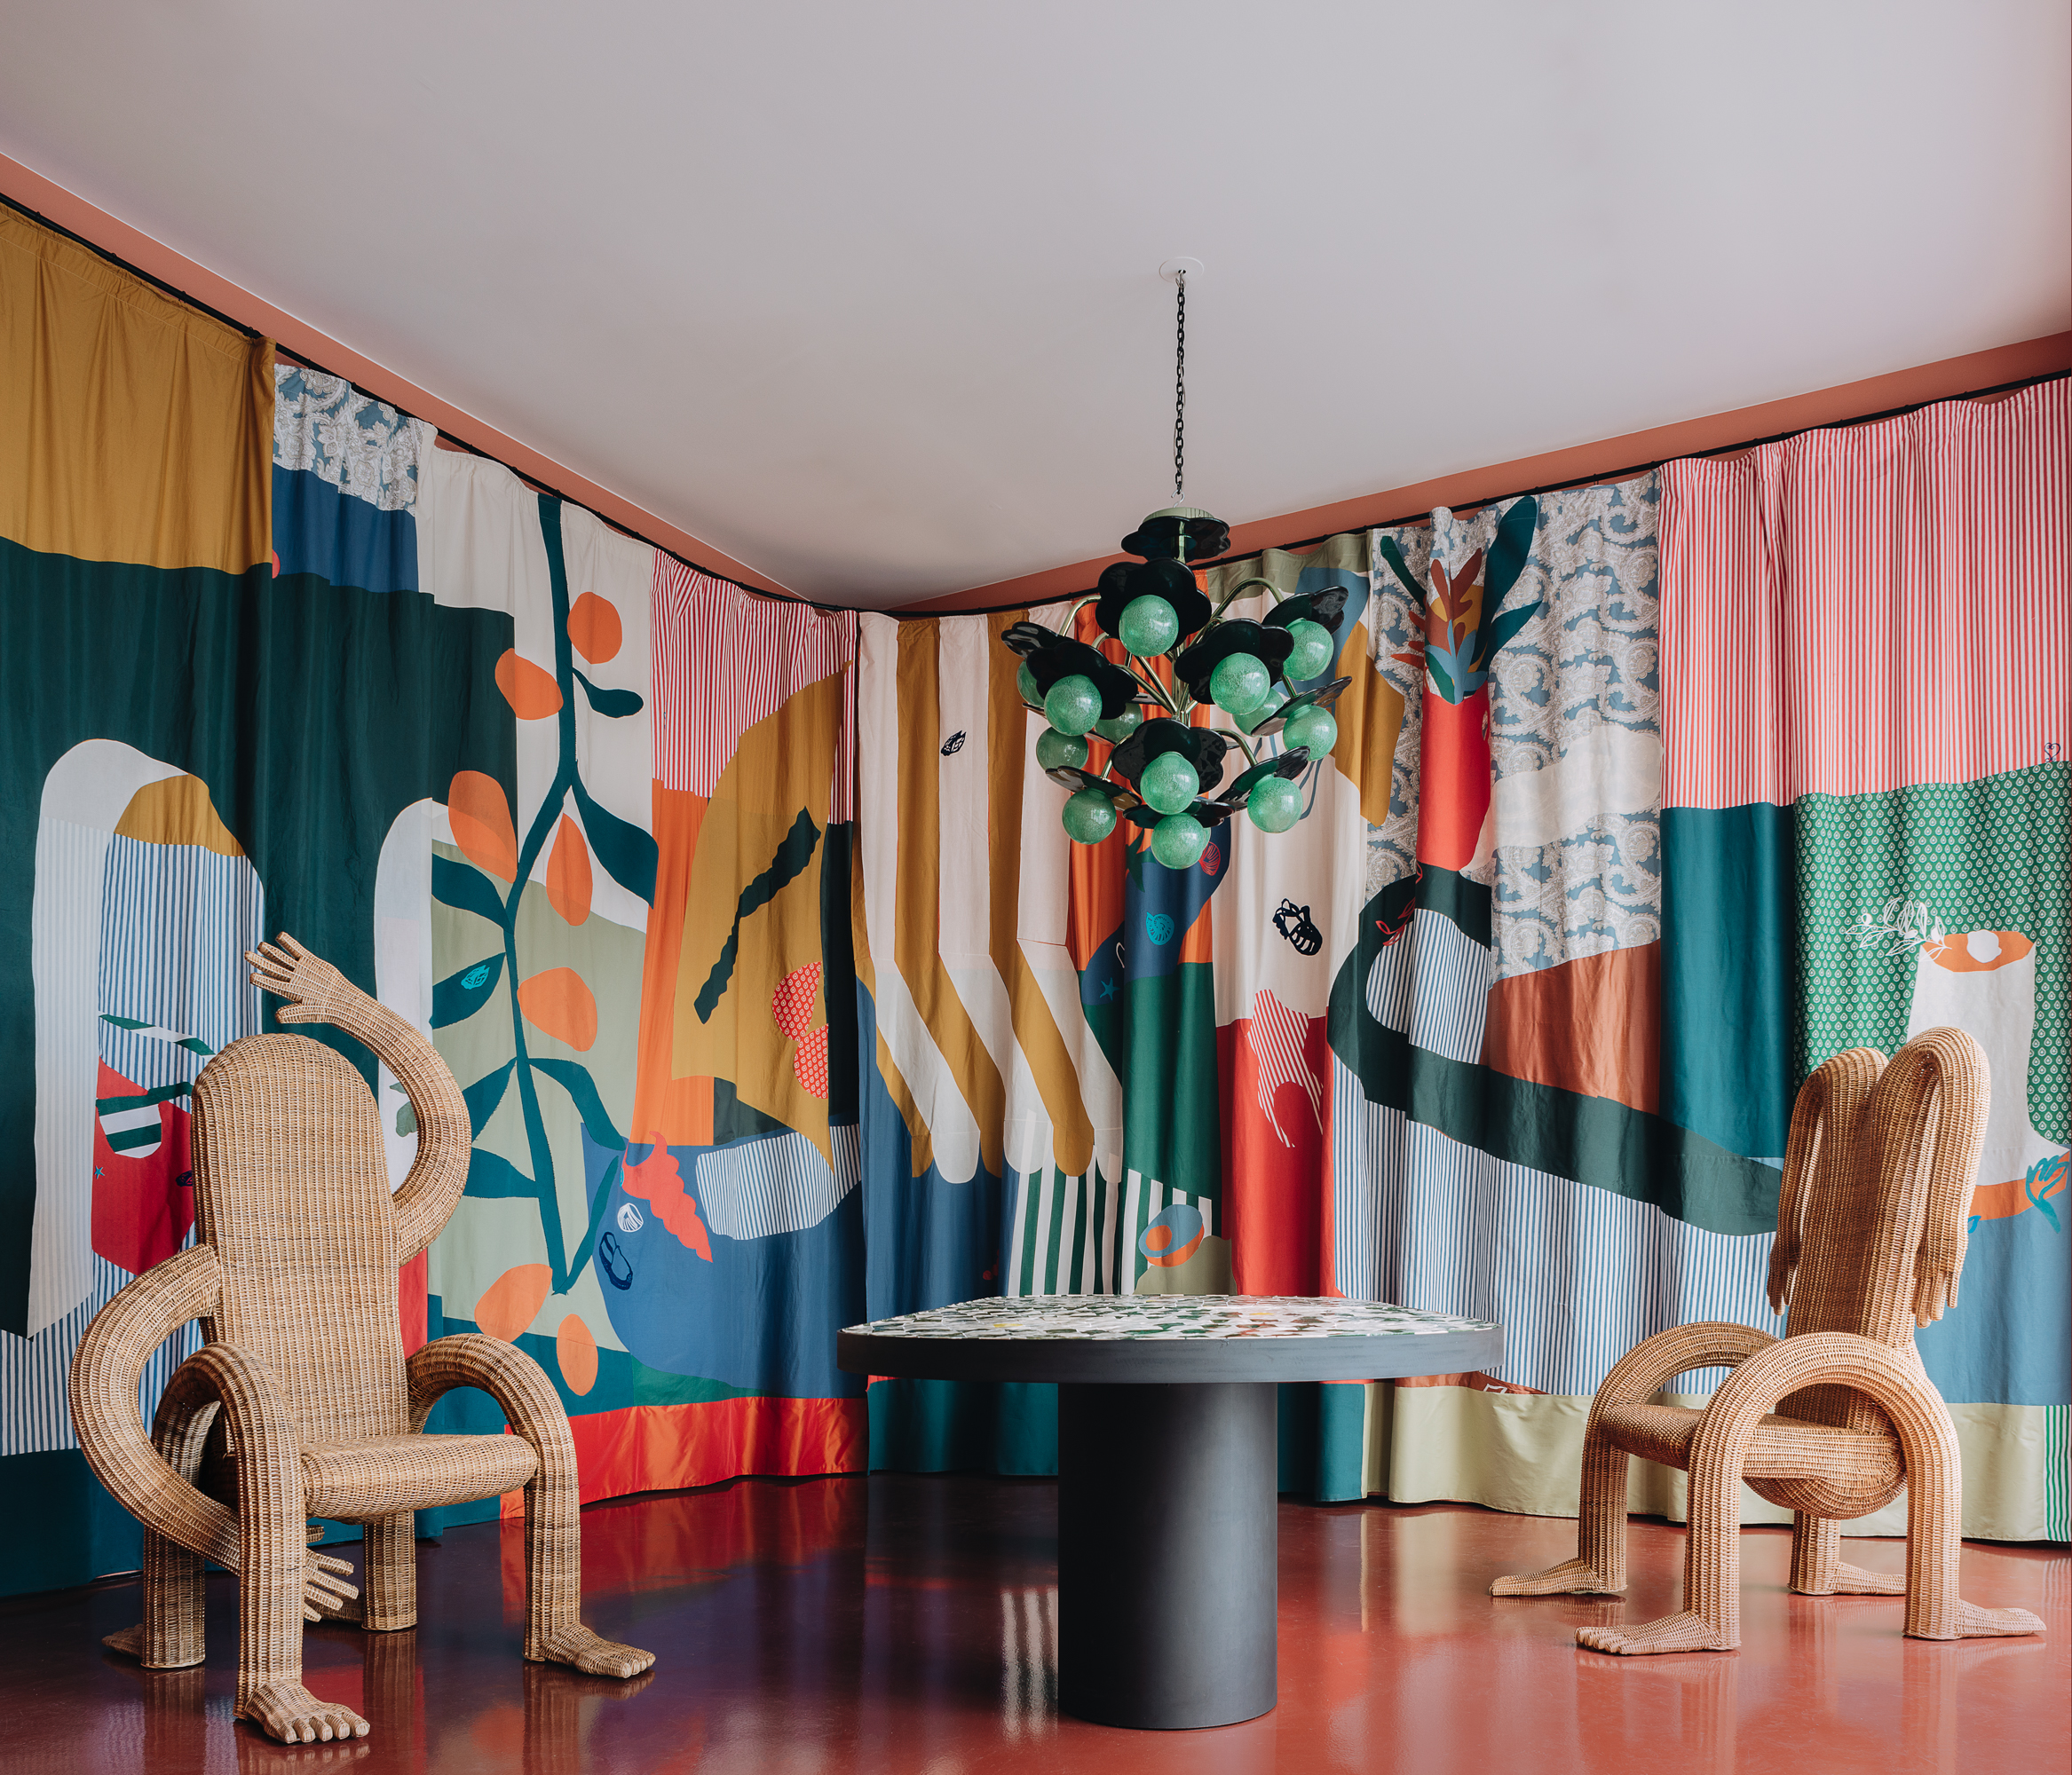 Project Room #2 - India Mahdavi